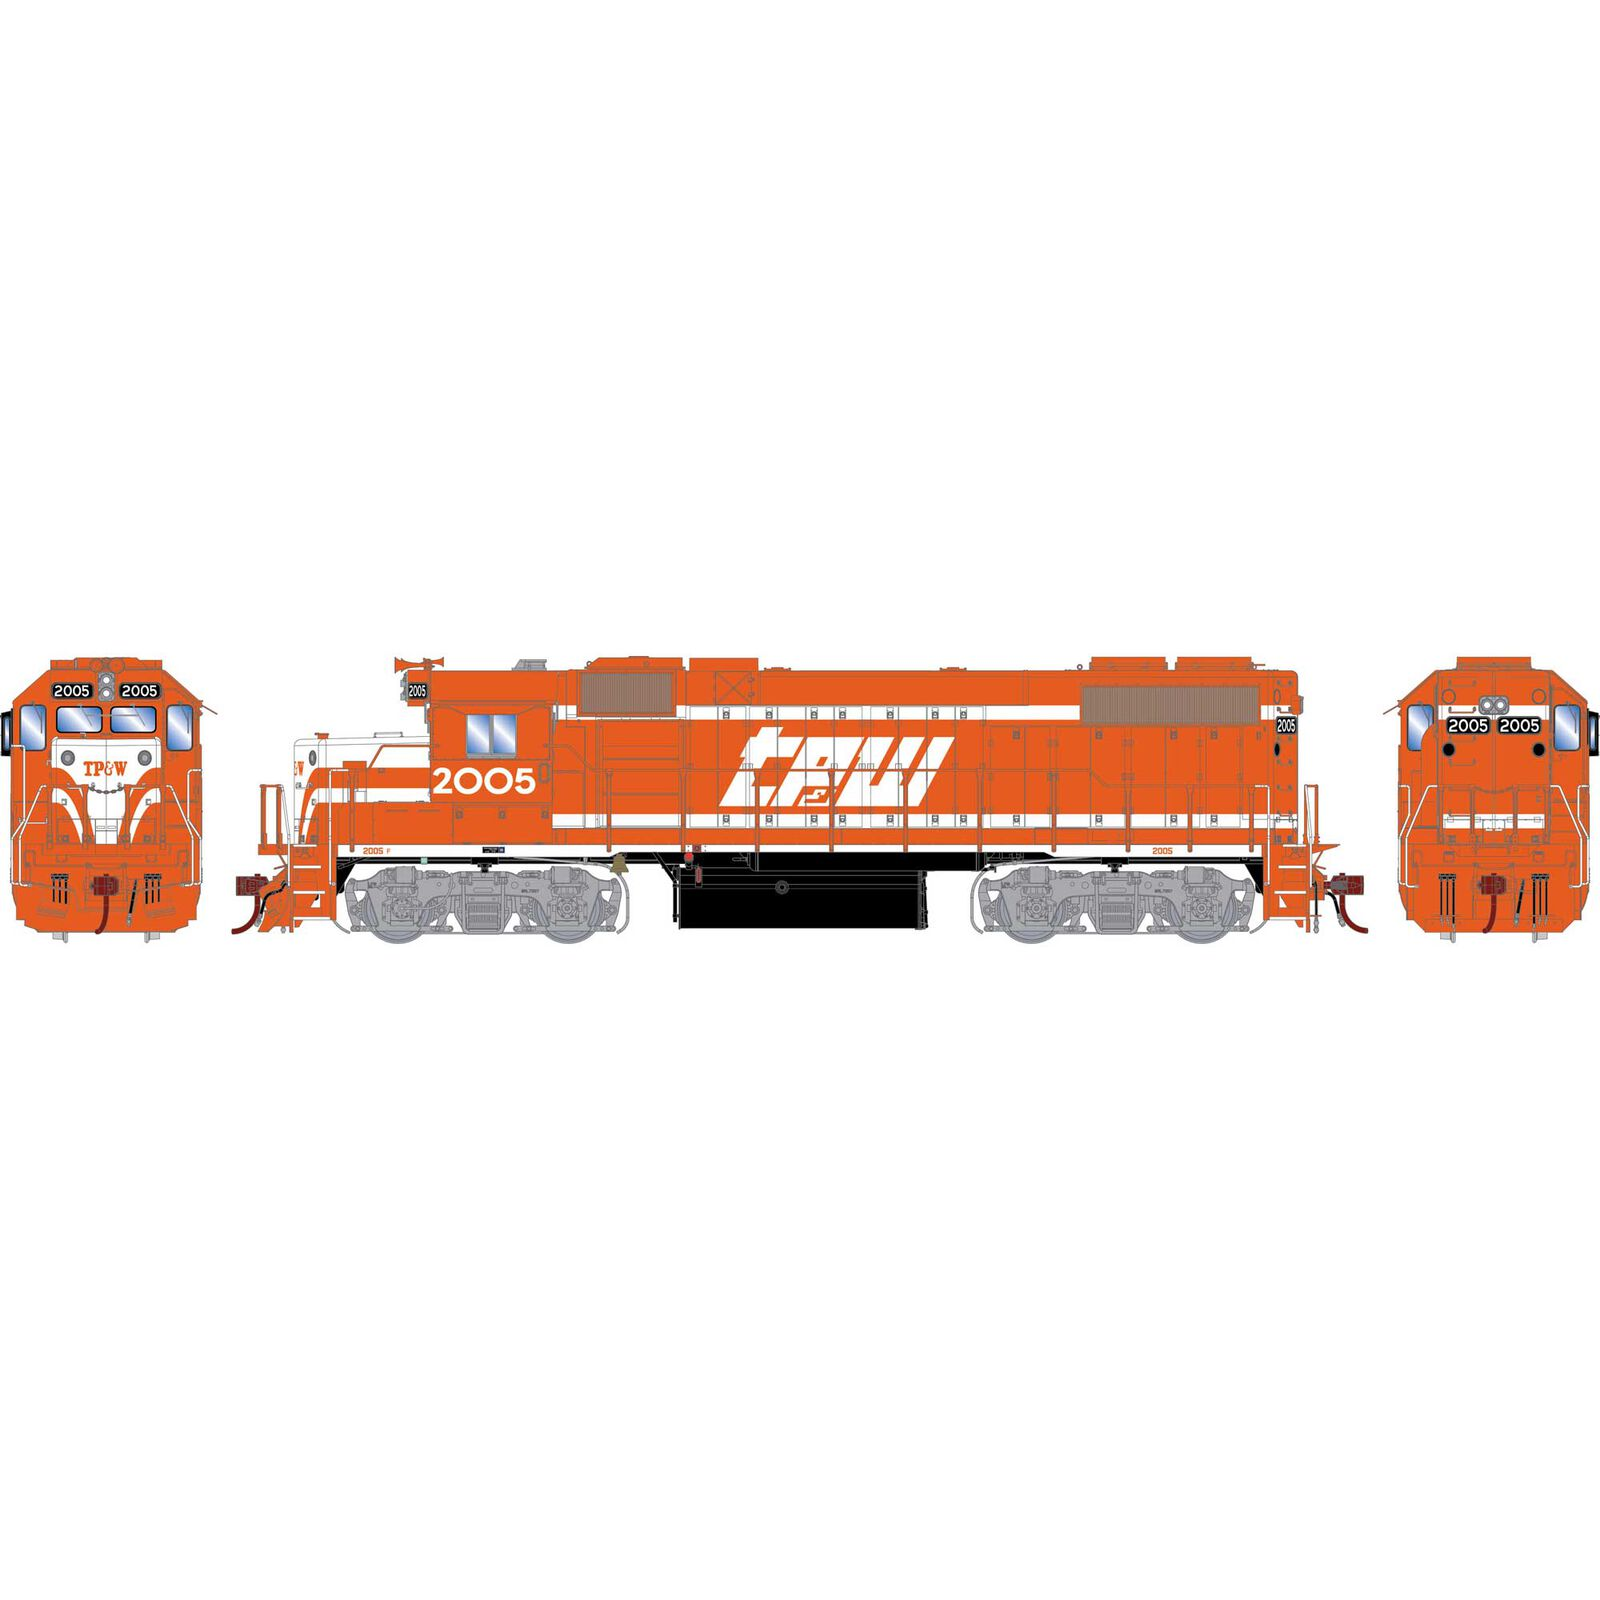 HO GP38-2 with DCC & Sound TP&W Red & White #2005